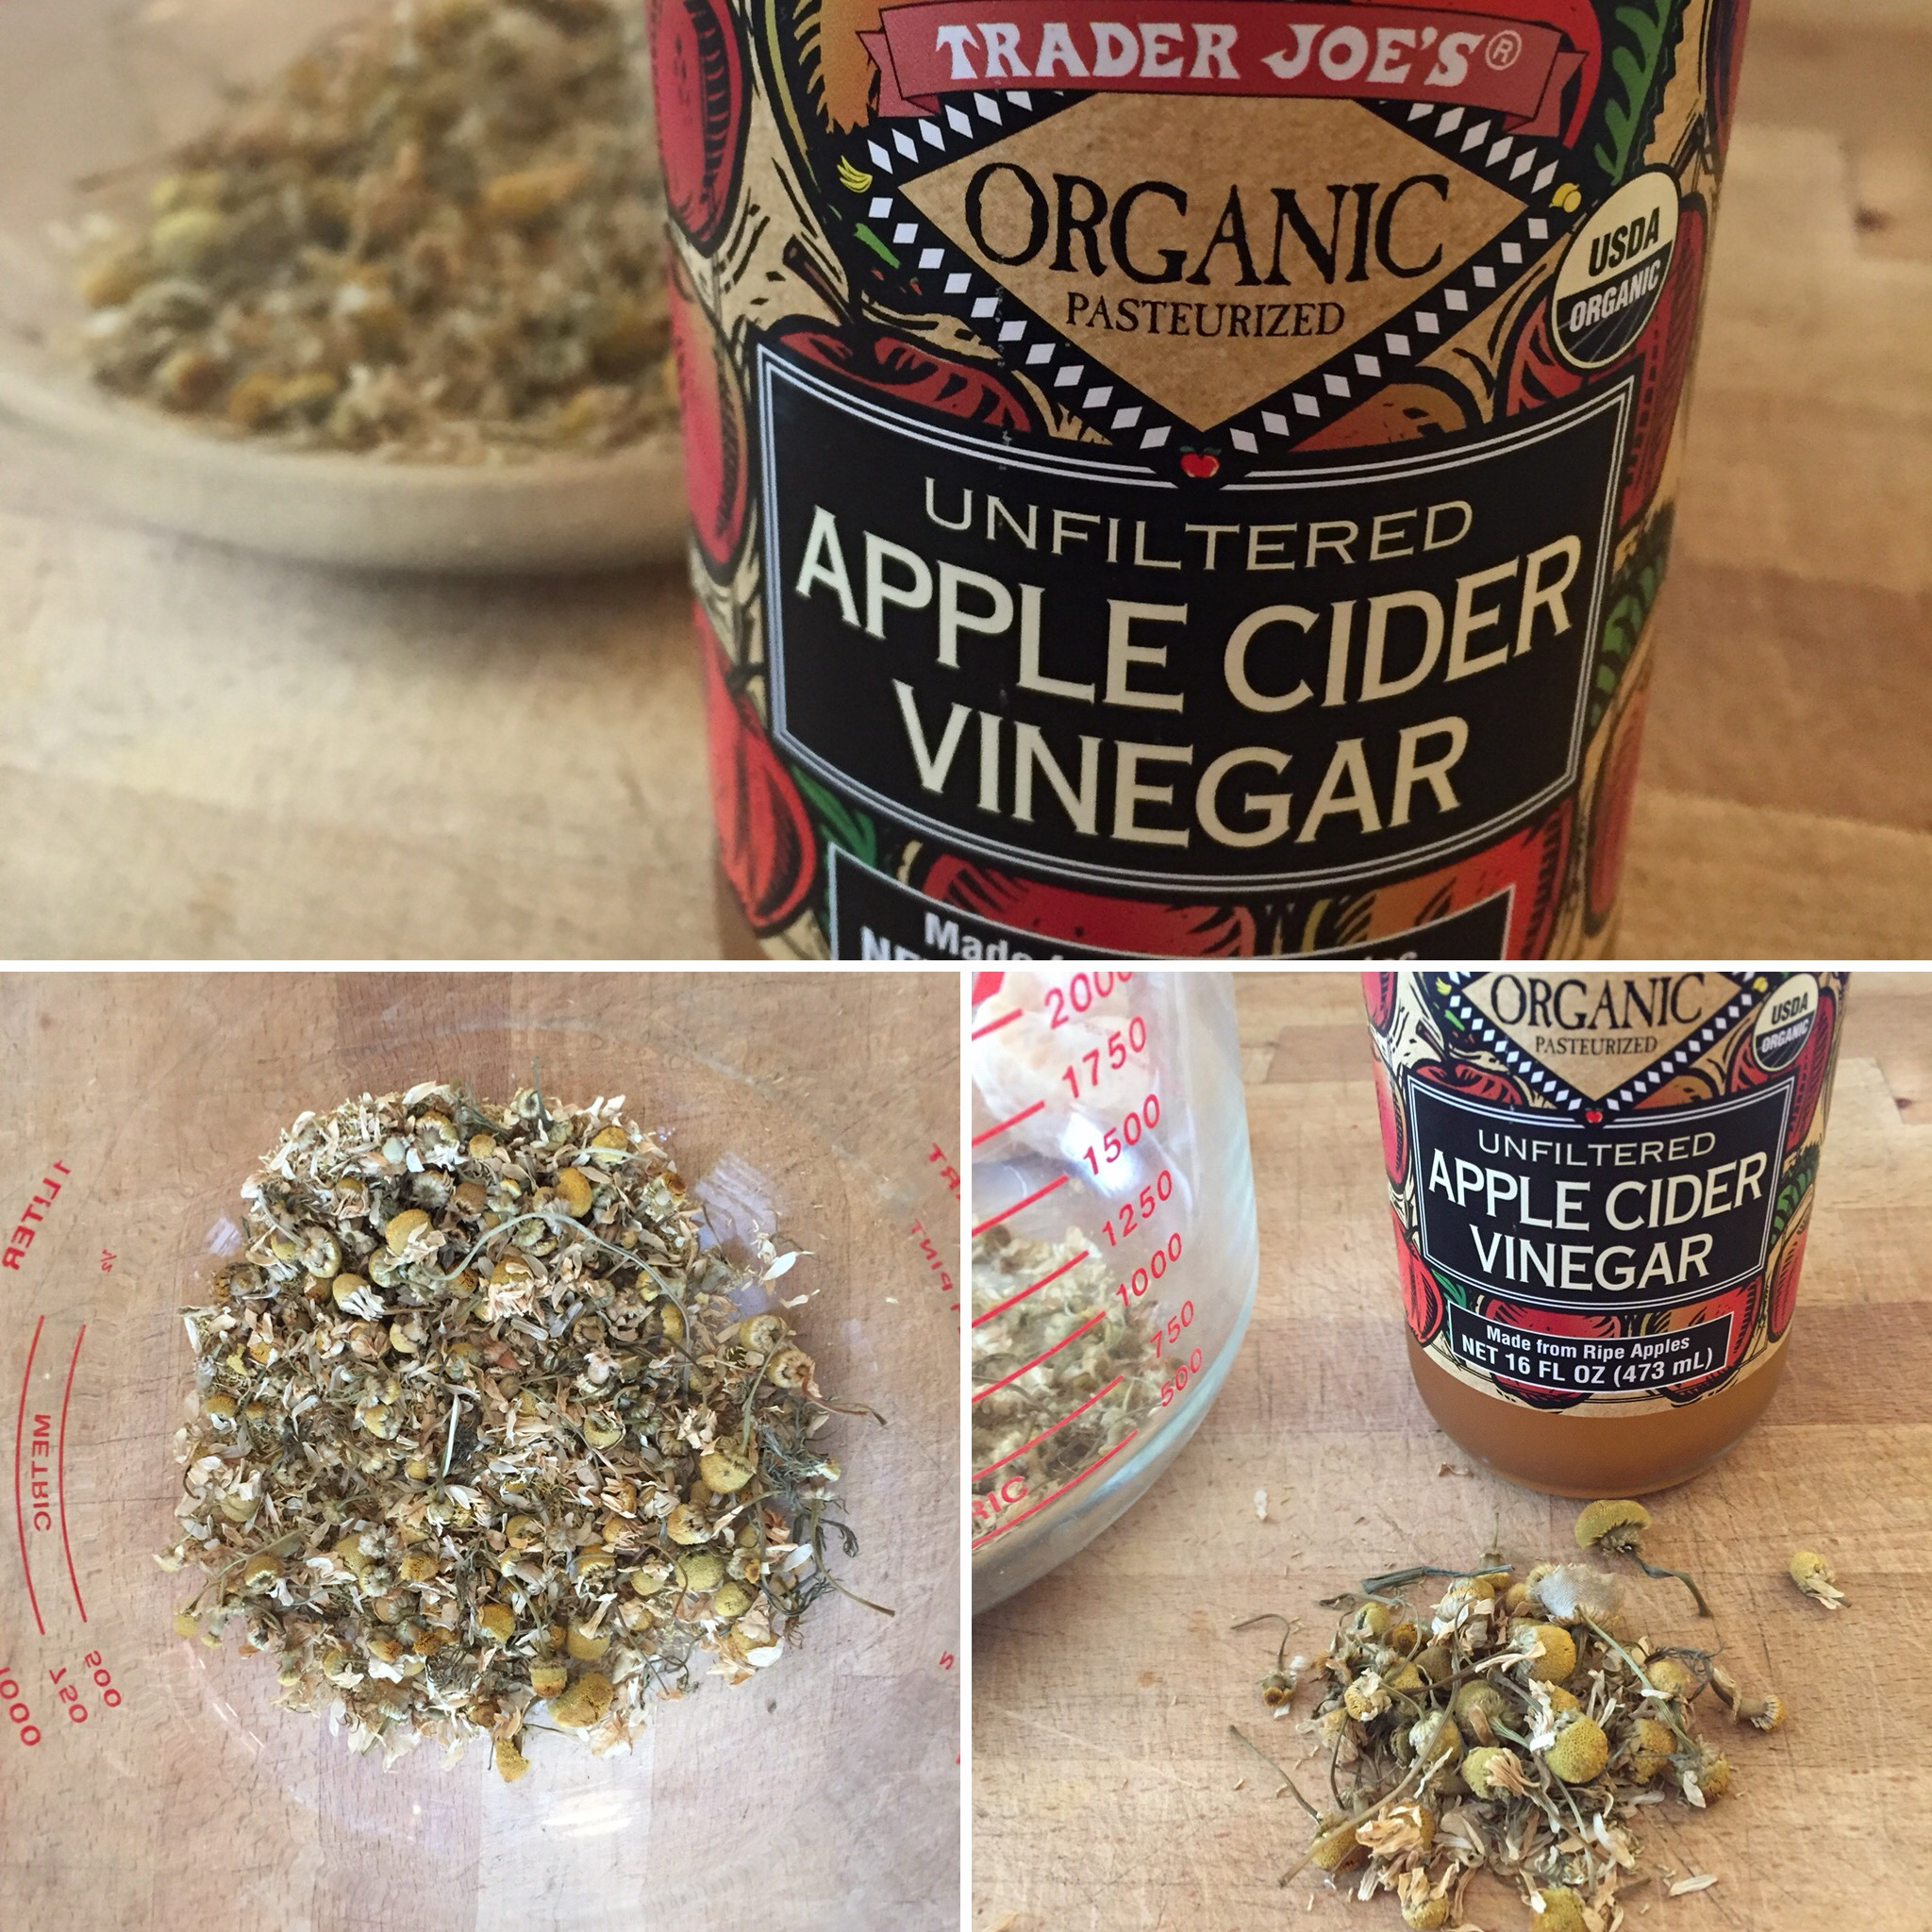 ACV & CHAMO - Apple Cider Vinegar is an age-old remedy, good for digestive issues.Add a 1/4 cup of chamomile flower to one bottle of ACV, let steep in a cupboard for up to two weeks, then strain.Dosing: one T. per half cup of juice, dailySee page on chamomile for more info.